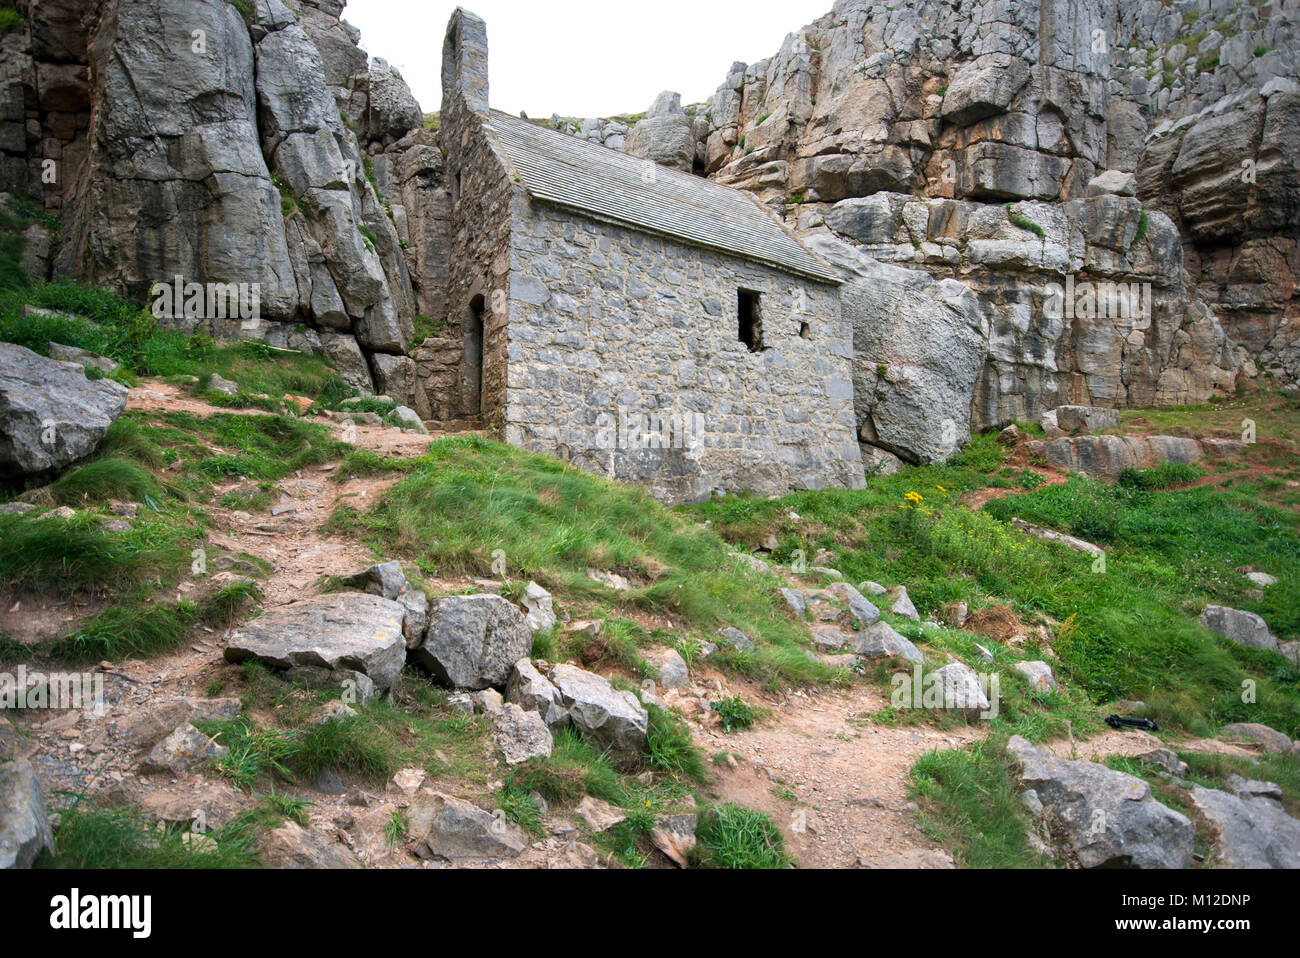 St Govan's Chapel tucked beneath the cliffs at St Govan's Head on the coast of Pembrokeshire in South Wales. - Stock Image